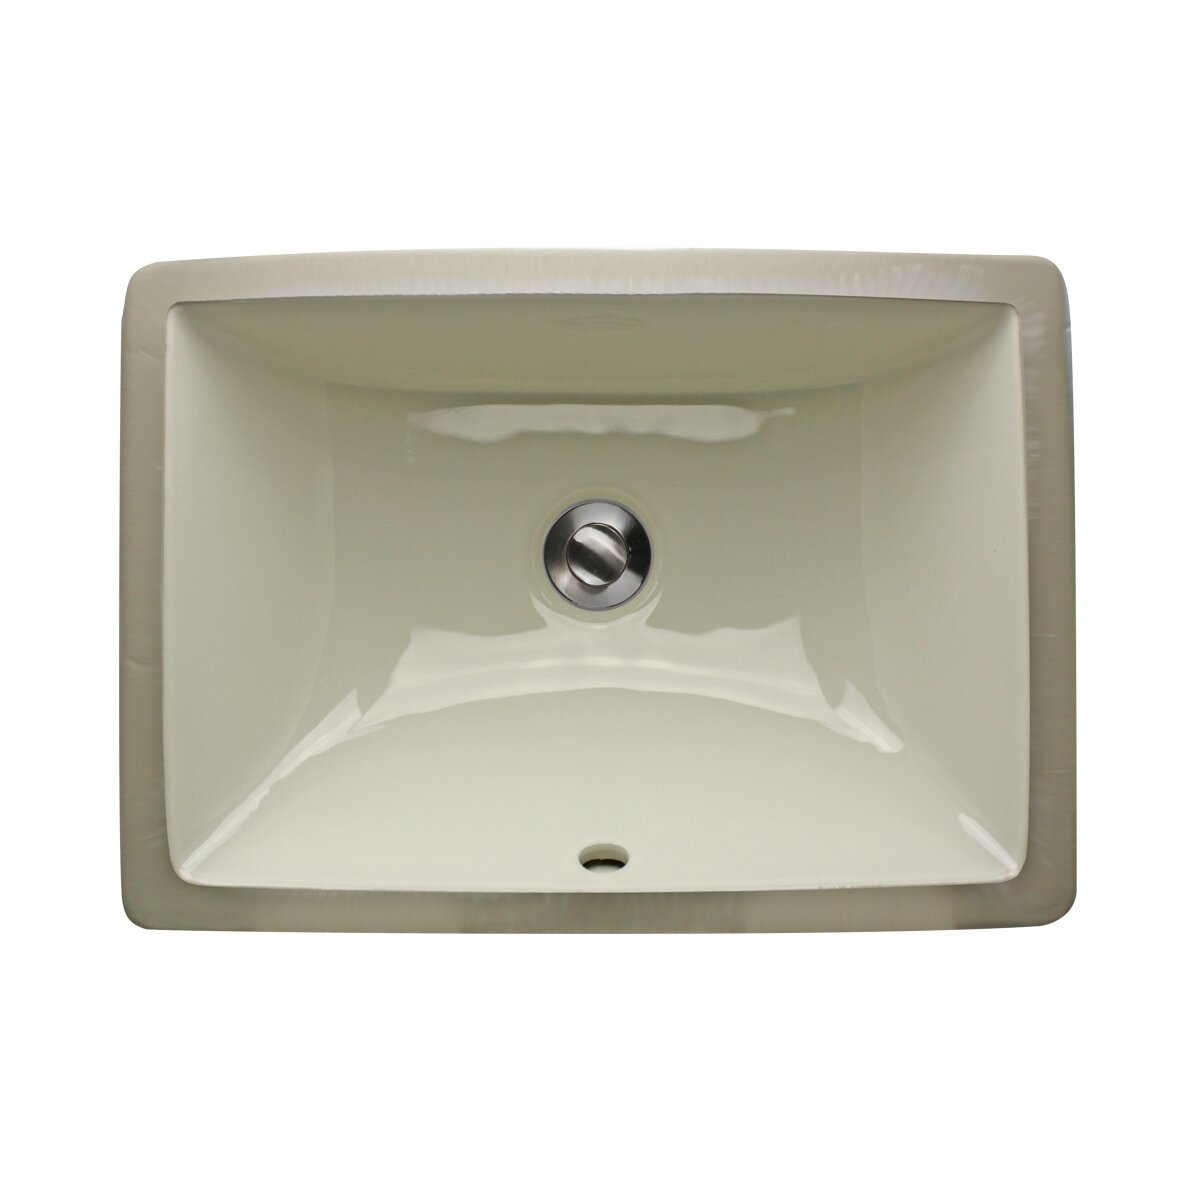 Http Www Wayfair Com Nantucket Sinks Rectangle Ceramic Undermount Bathroom Sink Um 16x11 B Nsk1153 Html